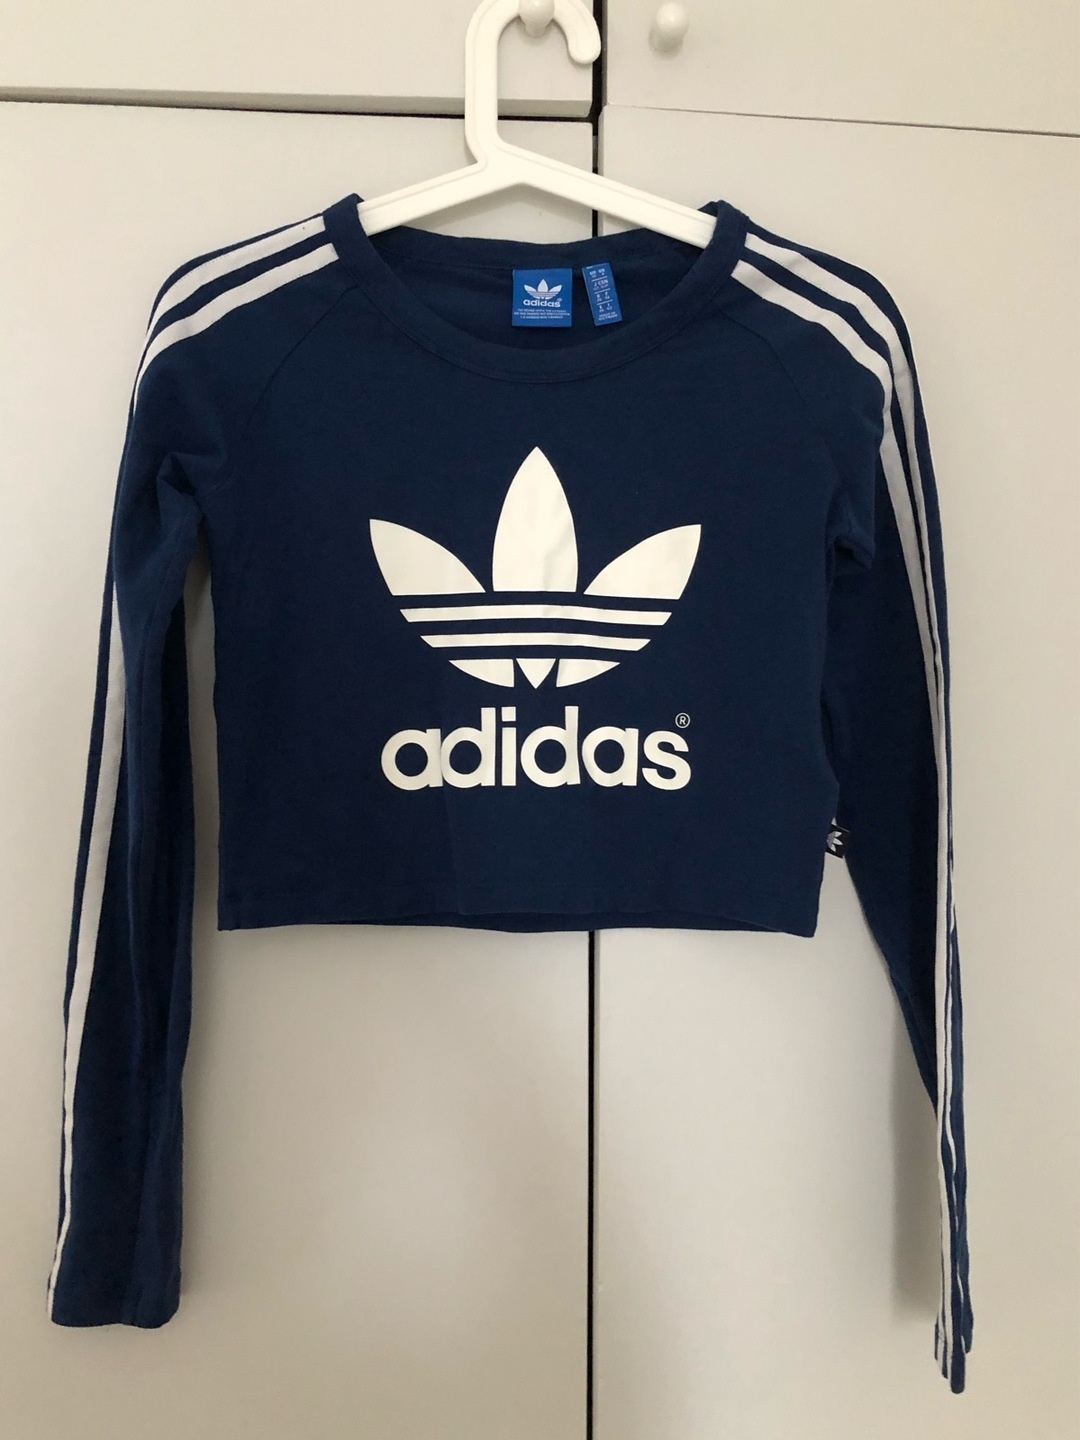 Women's tops & t-shirts - ADIDAS photo 1